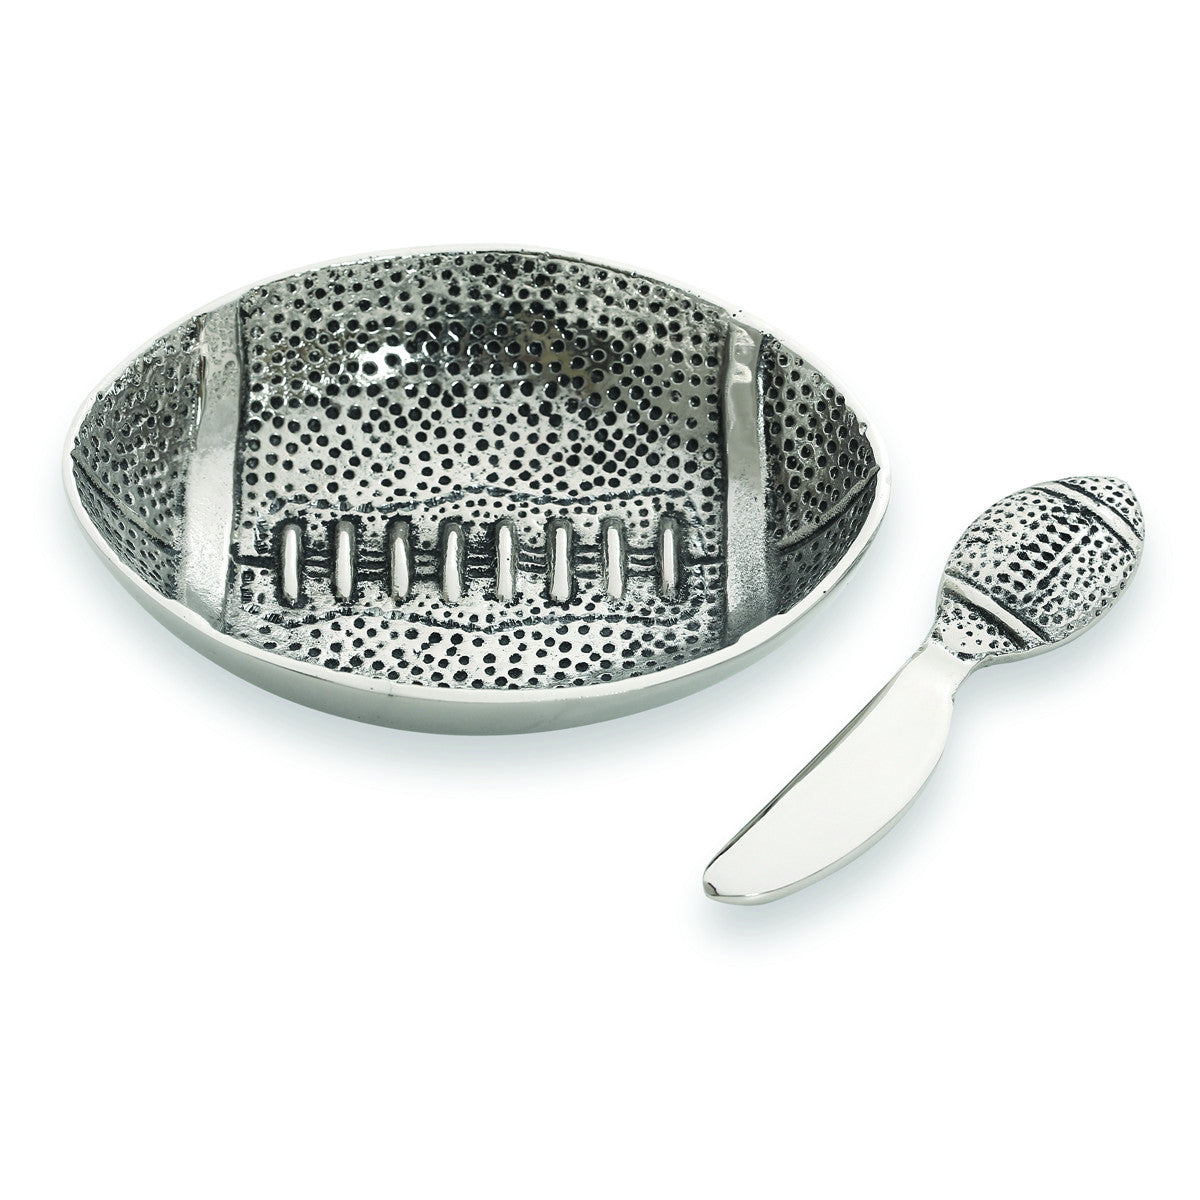 Table Accents Football Dip Dish w/ Spreader